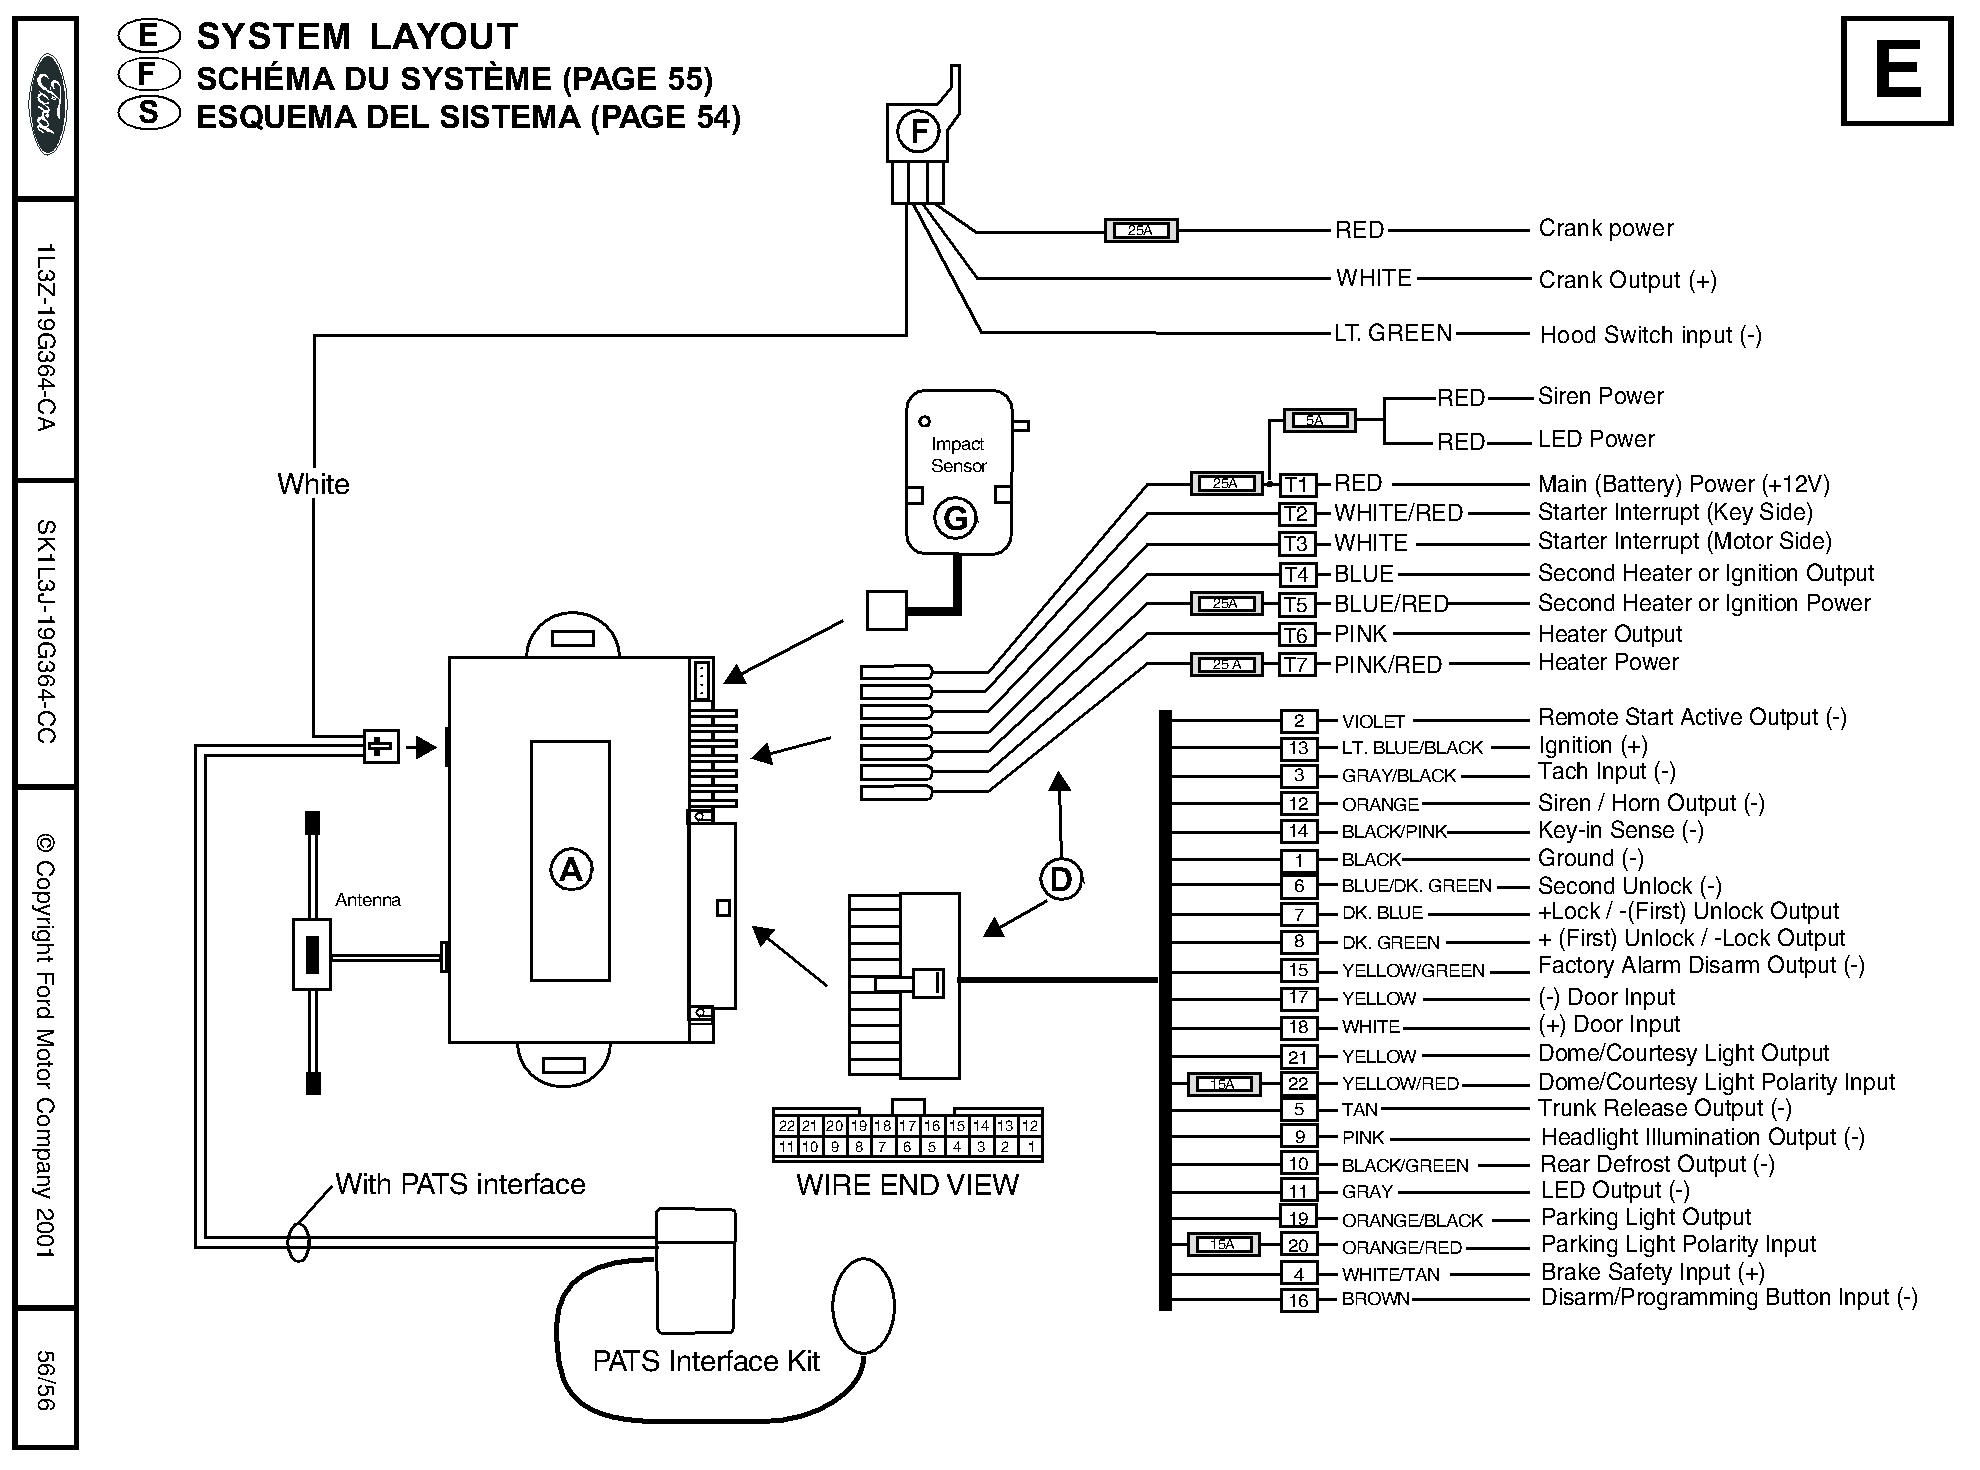 06 Liberty Aftermarket Radio Wiring Diagram together with Infiniti G20 Ecu Location additionally Wireharness Mazda1 likewise Search together with Index. on pioneer wiring harness honda